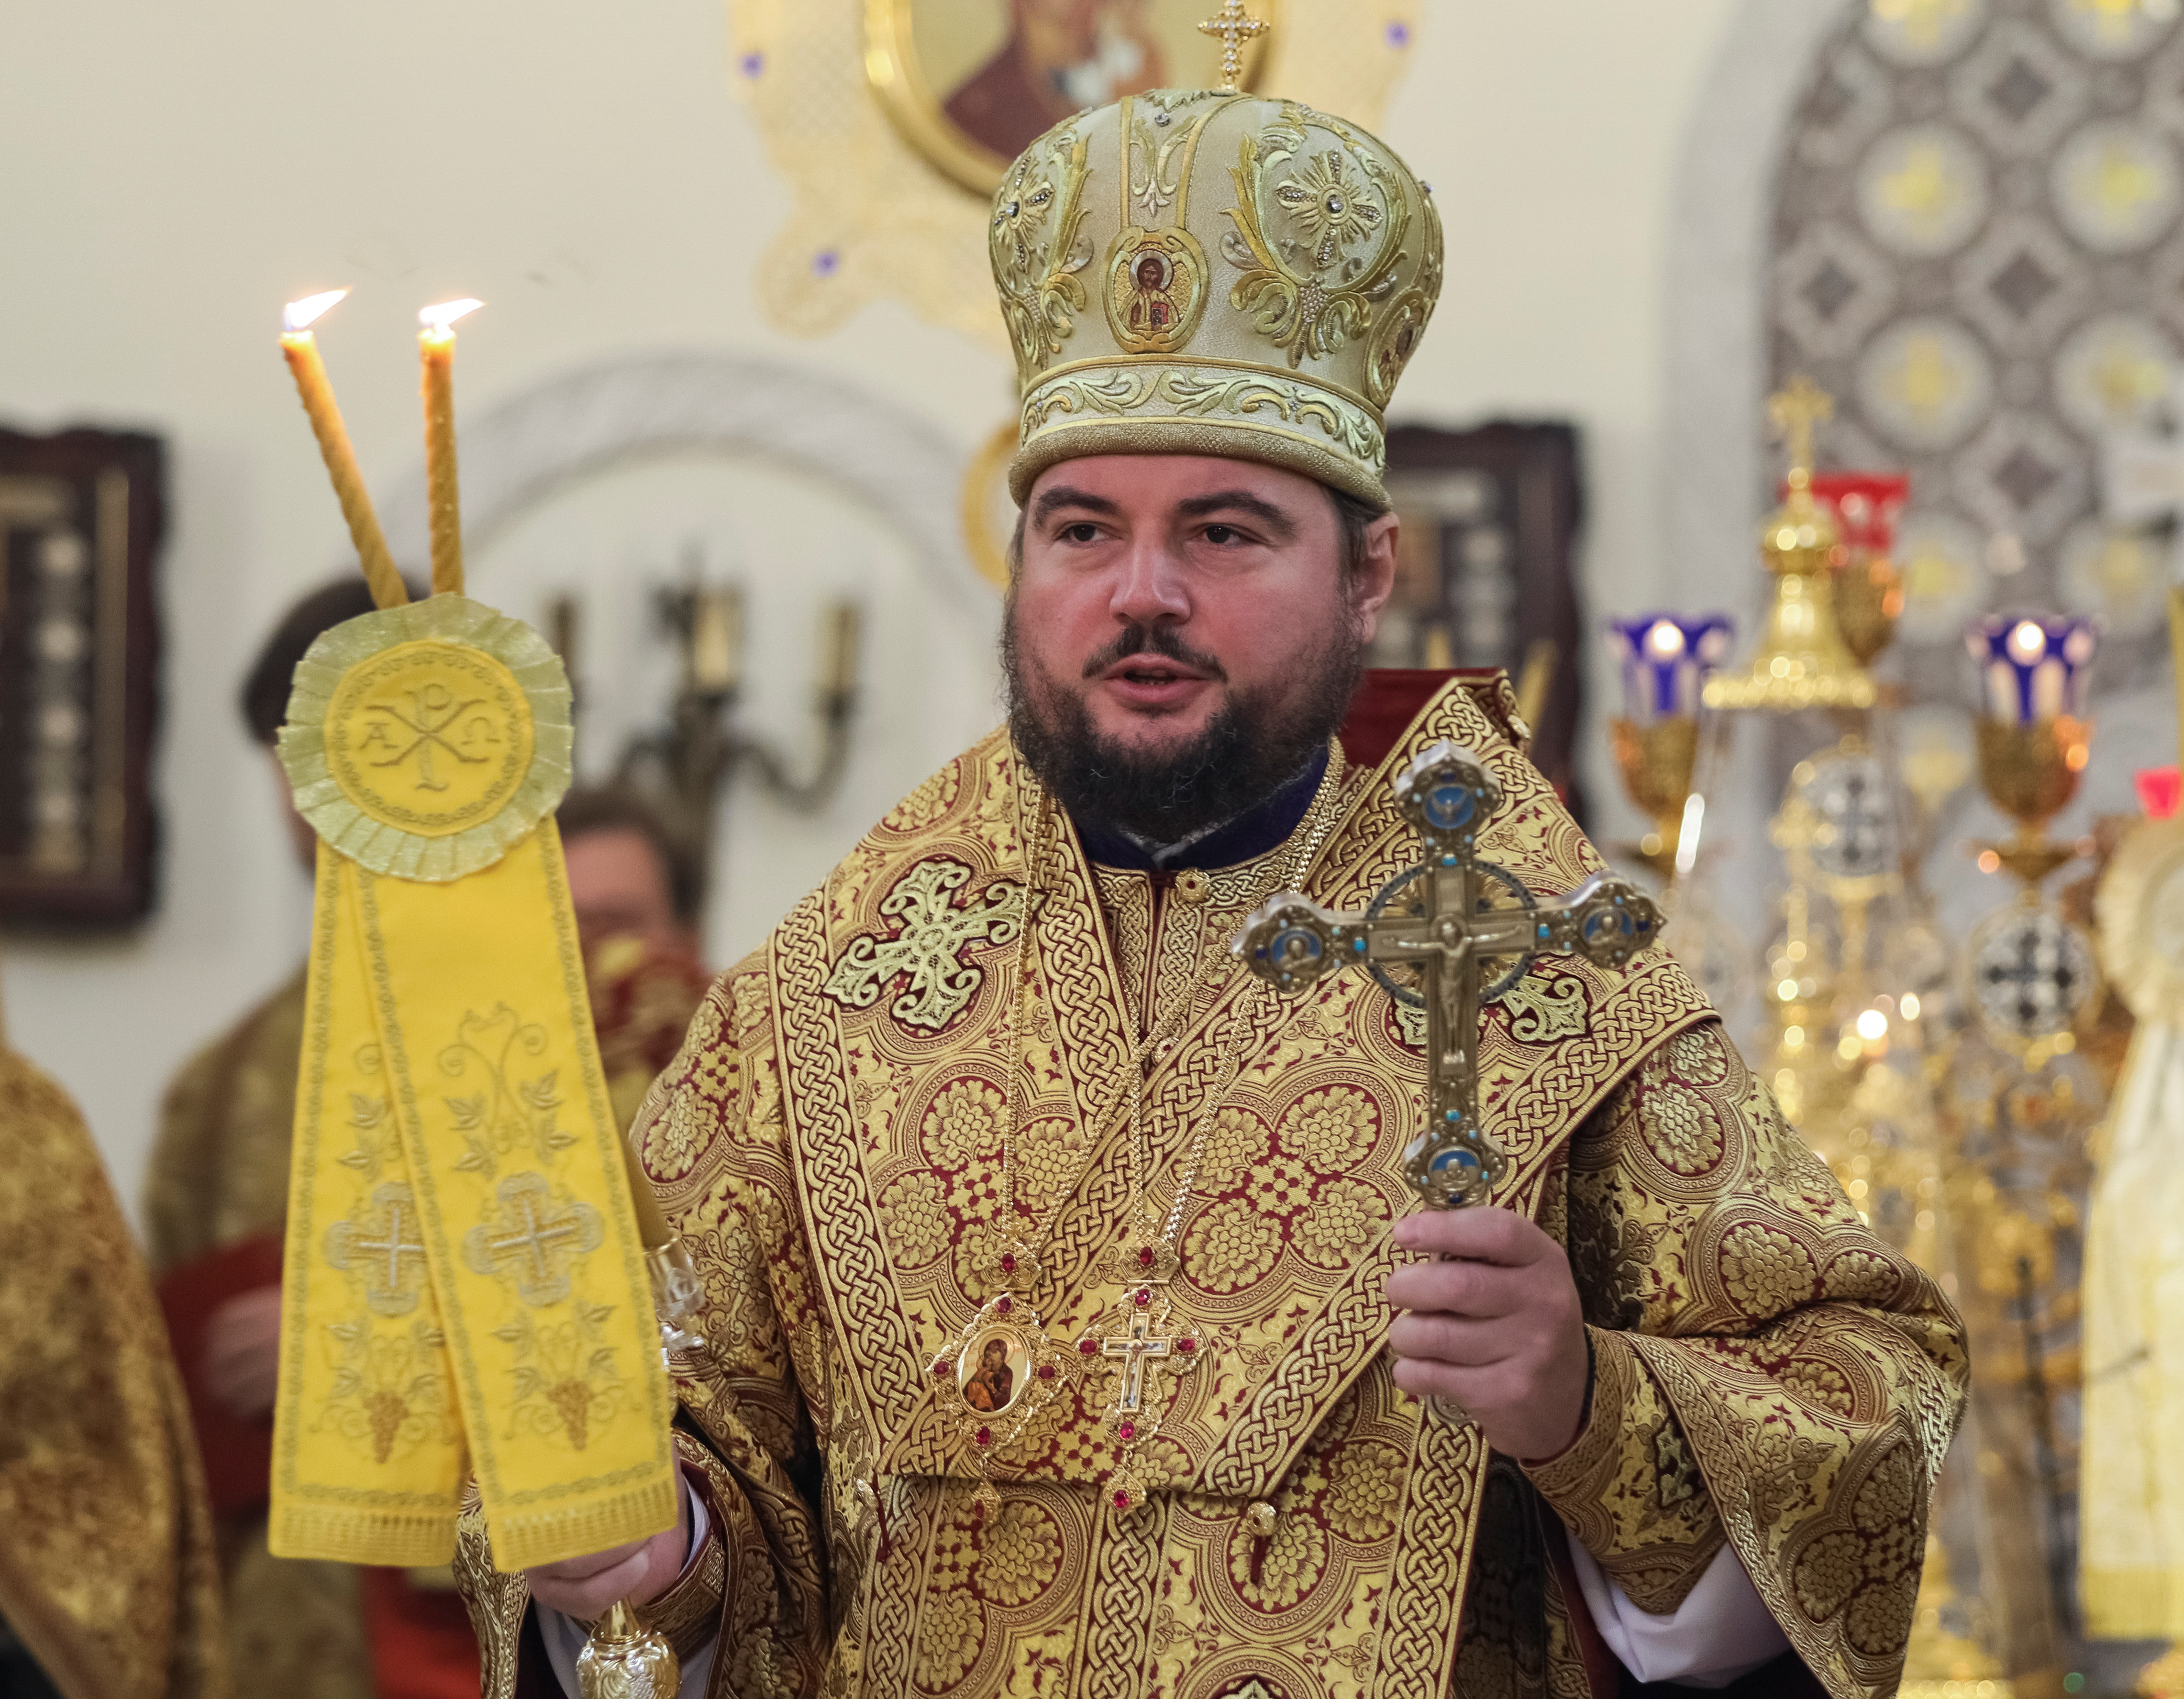 Traitors or Russian agents? Clergy caught in Ukraine church row